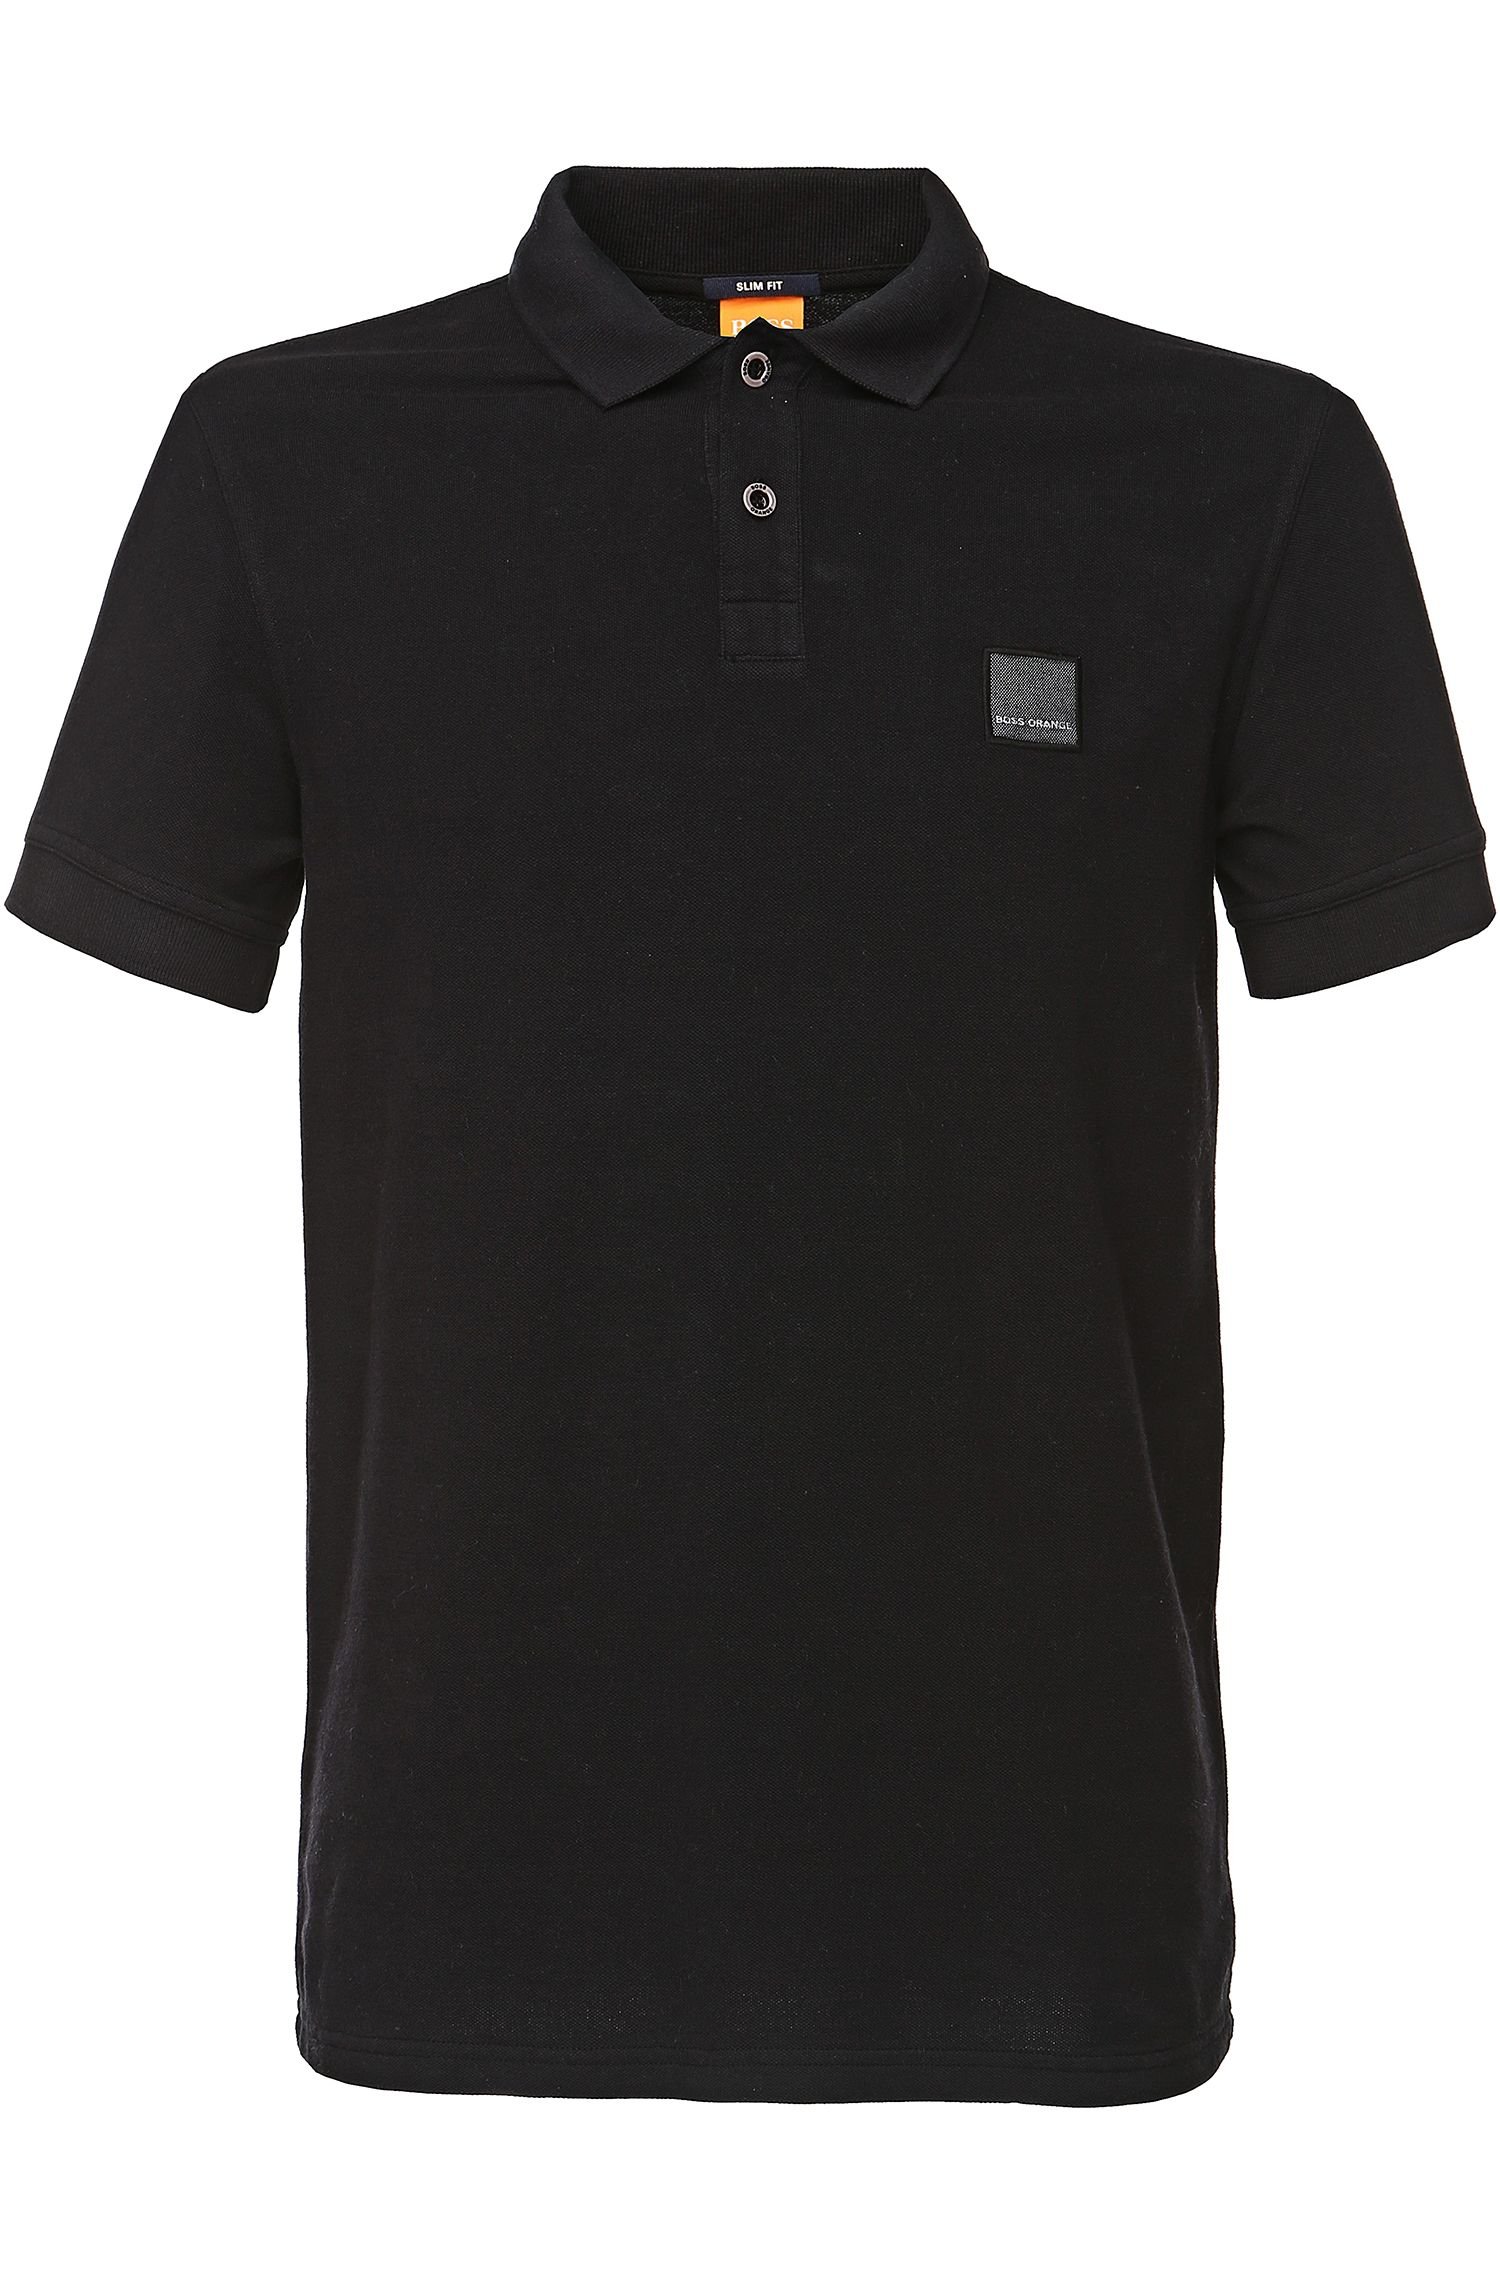 Polo slim fit de algodón lavado